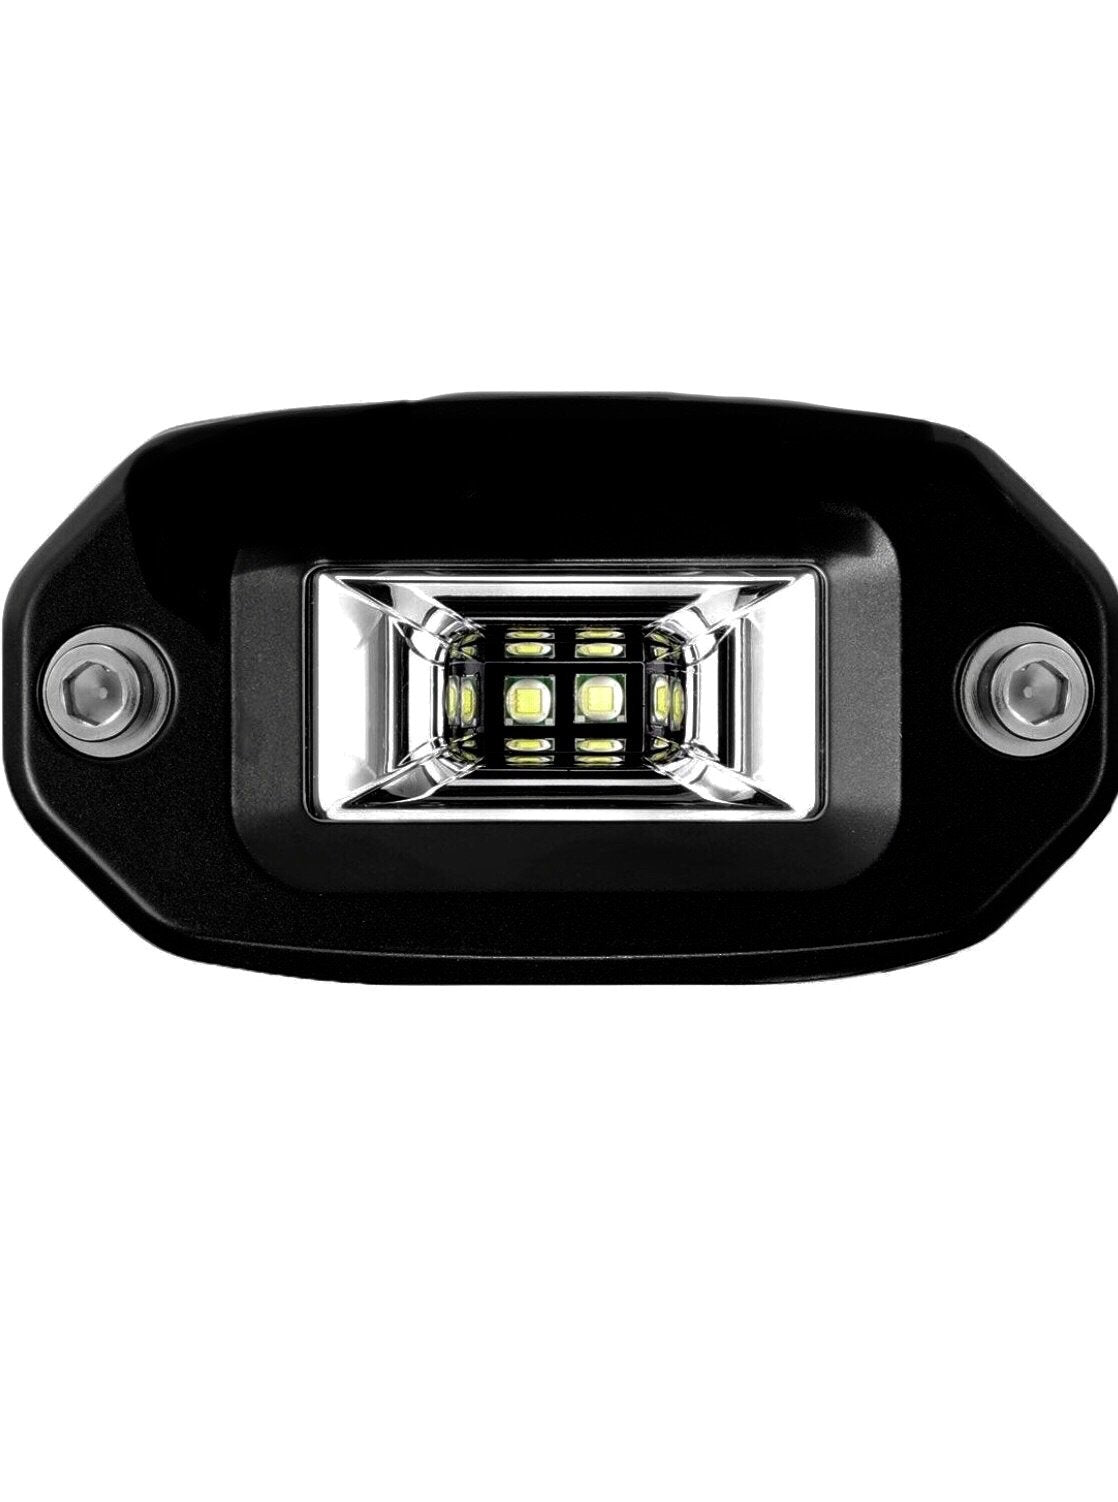 Cali Raised LED - 20W Flood Flush Mount LED Pod